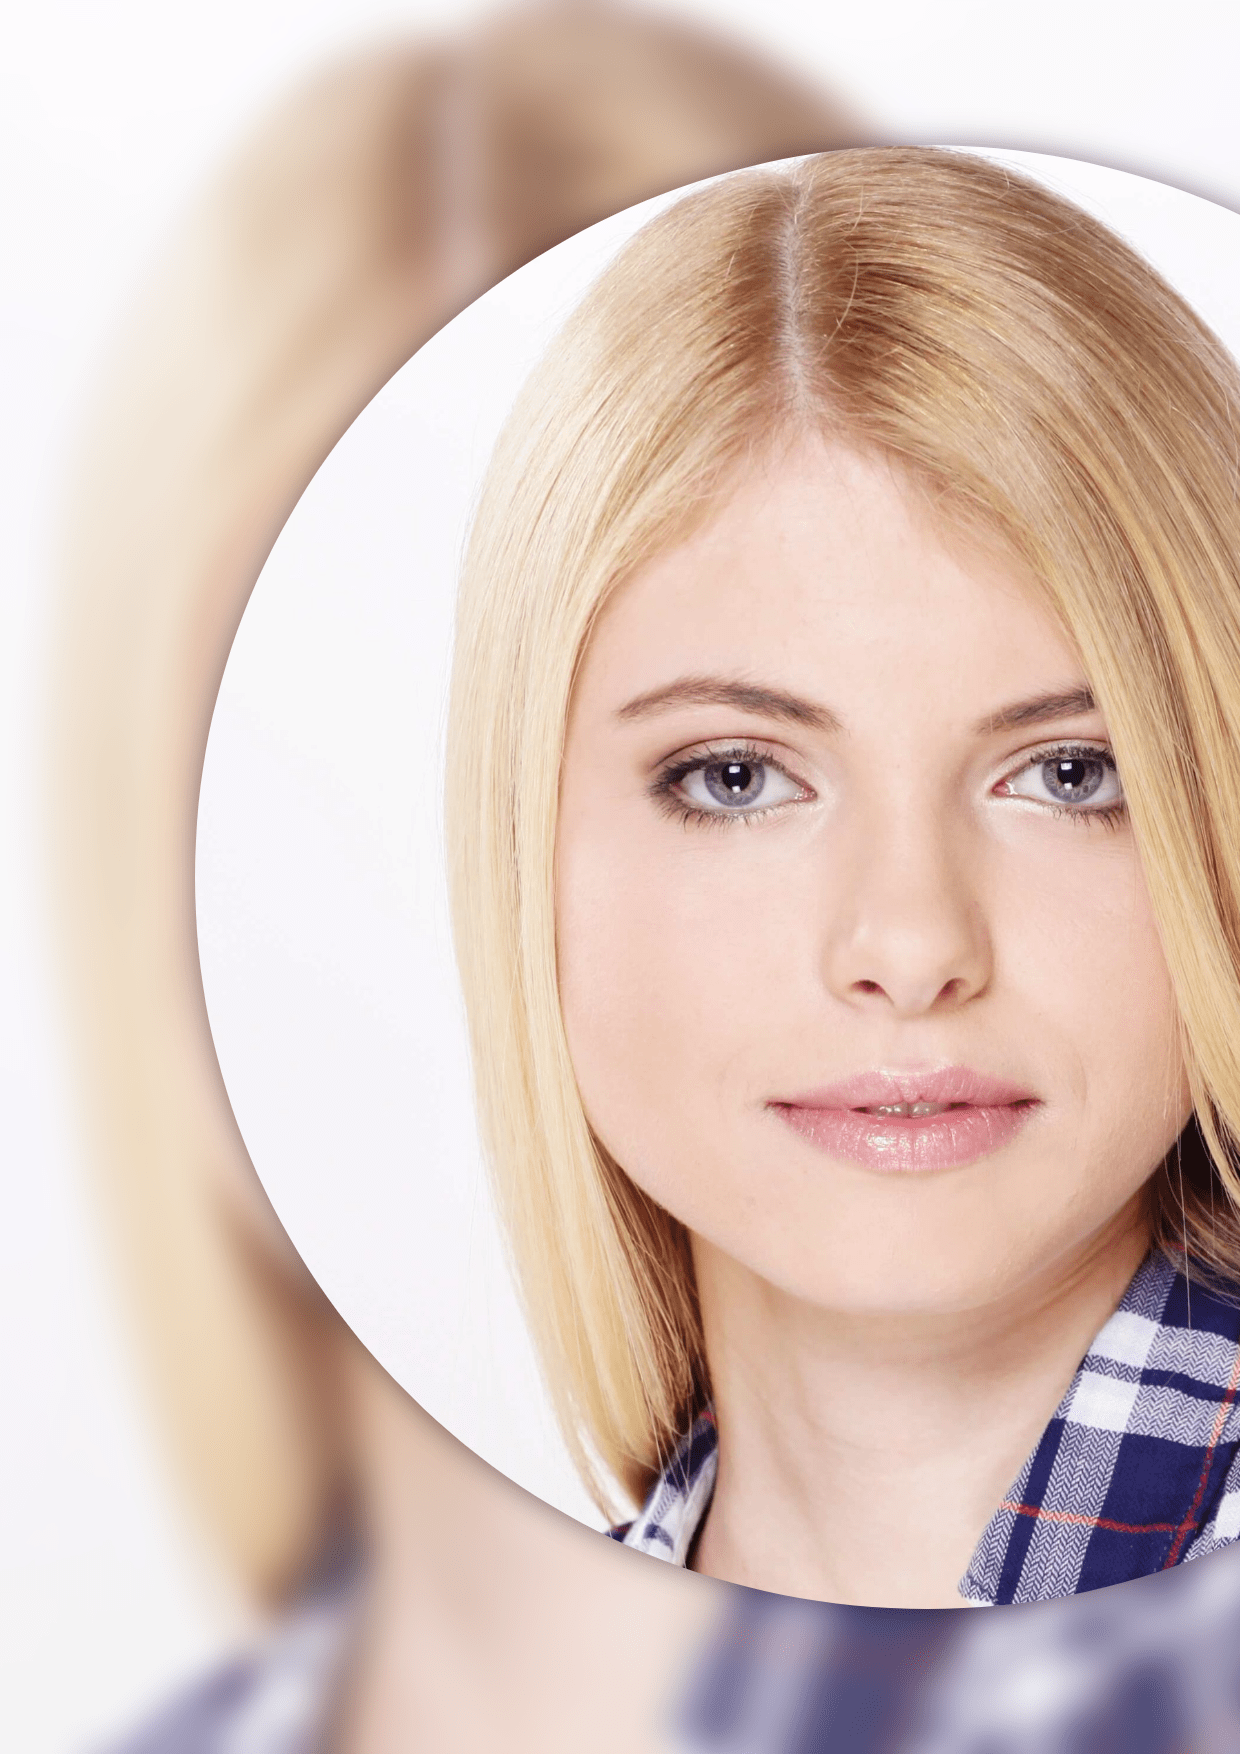 Hair,                Face,                Eyebrow,                Nose,                Blond,                Mockup,                Frame,                Image,                Avatar,                White,                 Free Image